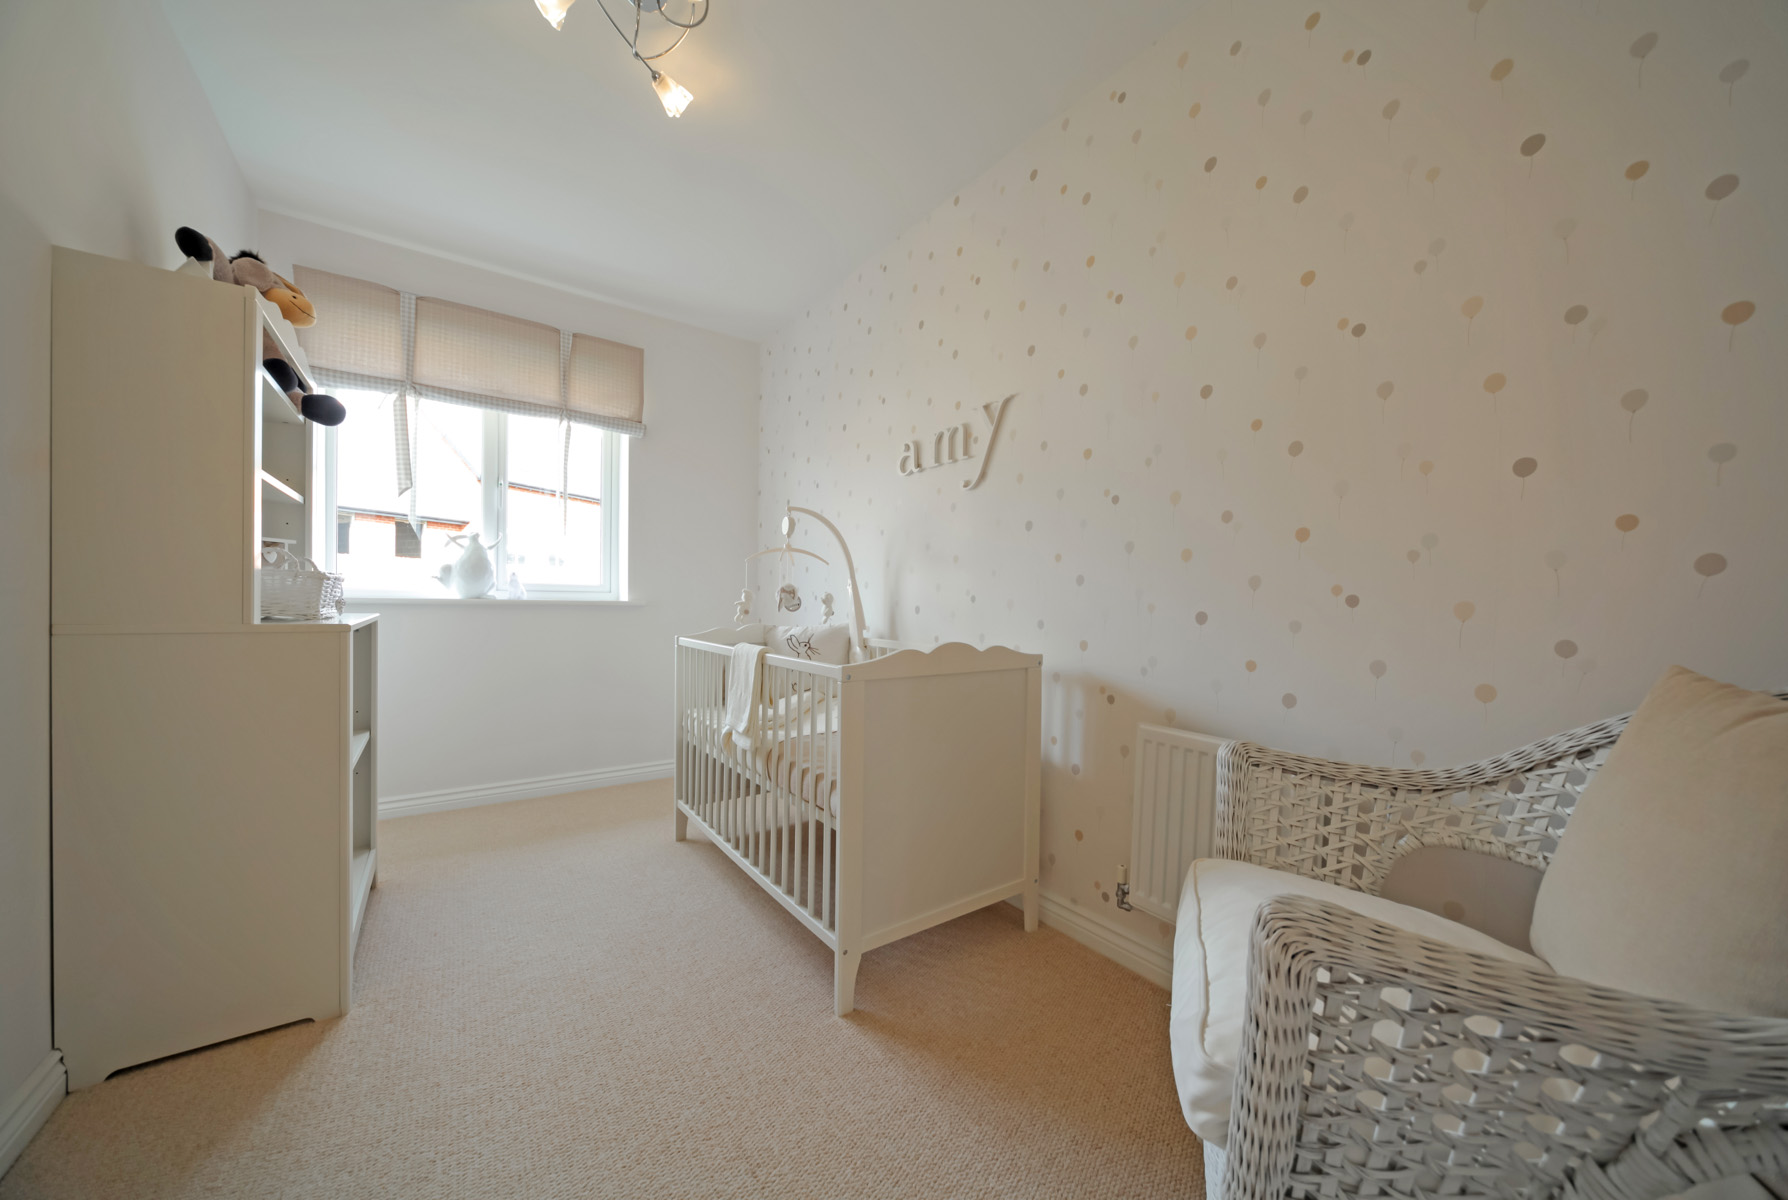 021 Gosford Nursery Bedroom 3